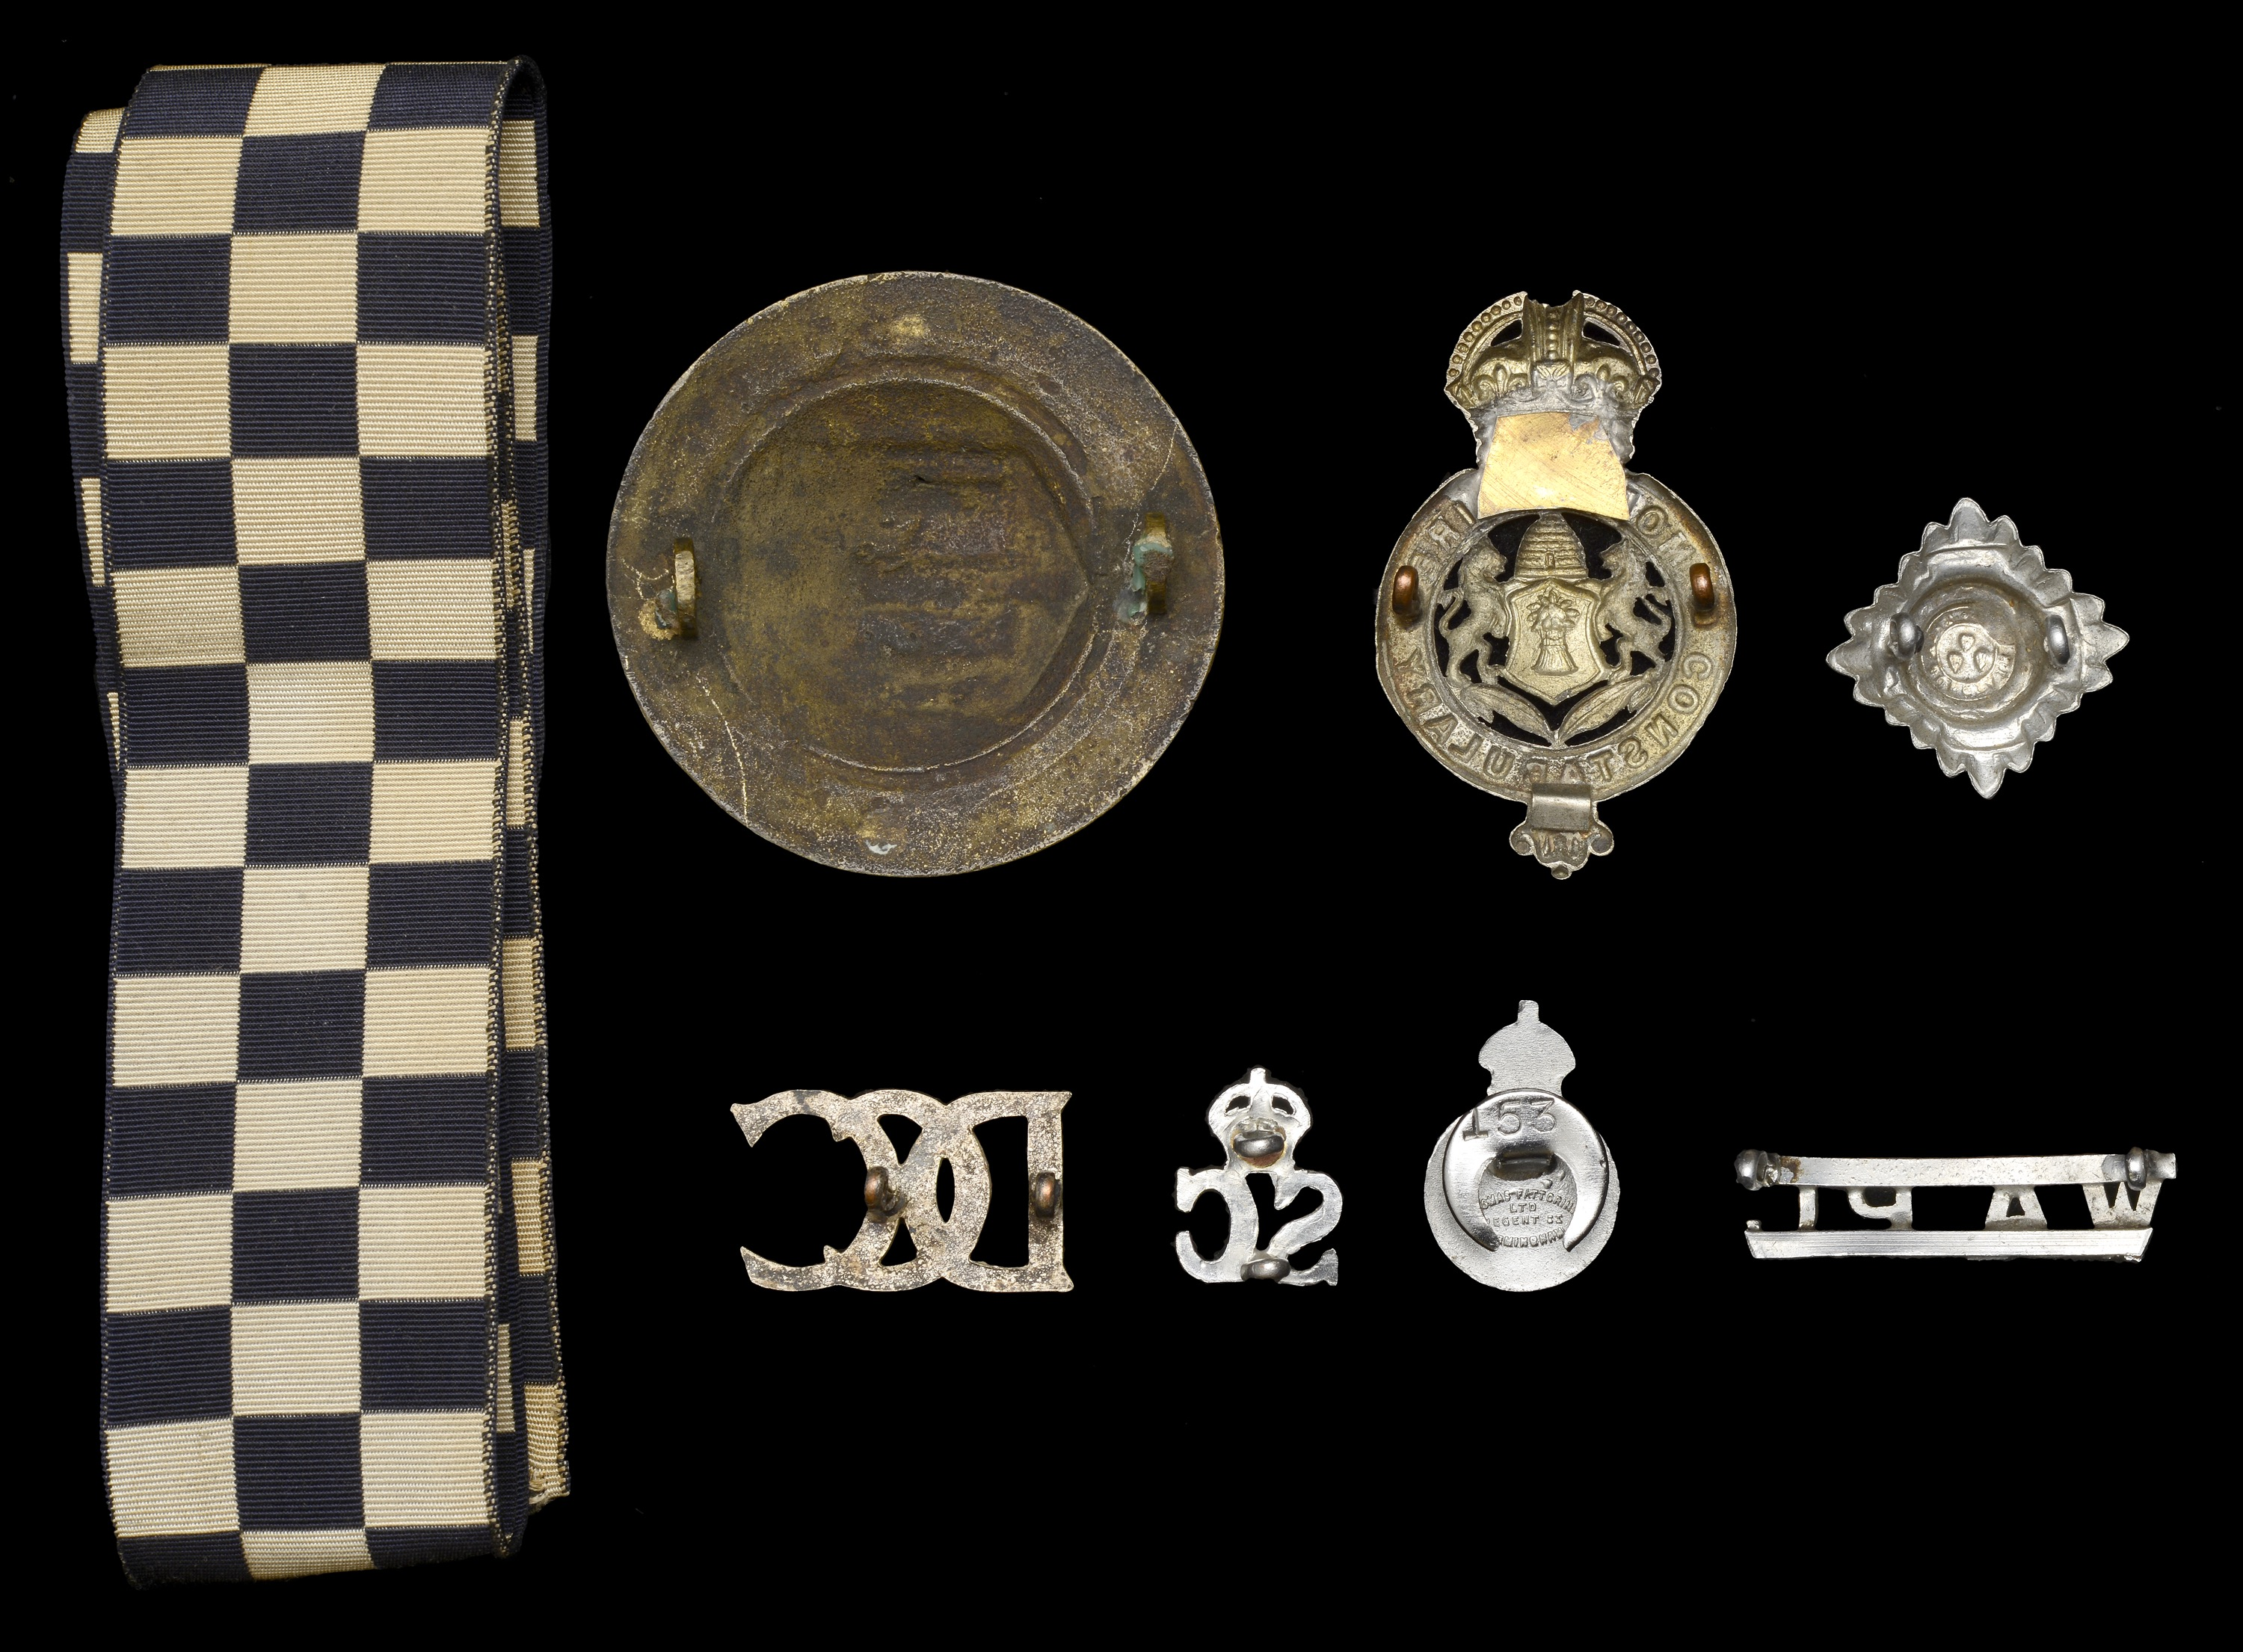 A small Collection of Scottish Police Badges - Image 2 of 2